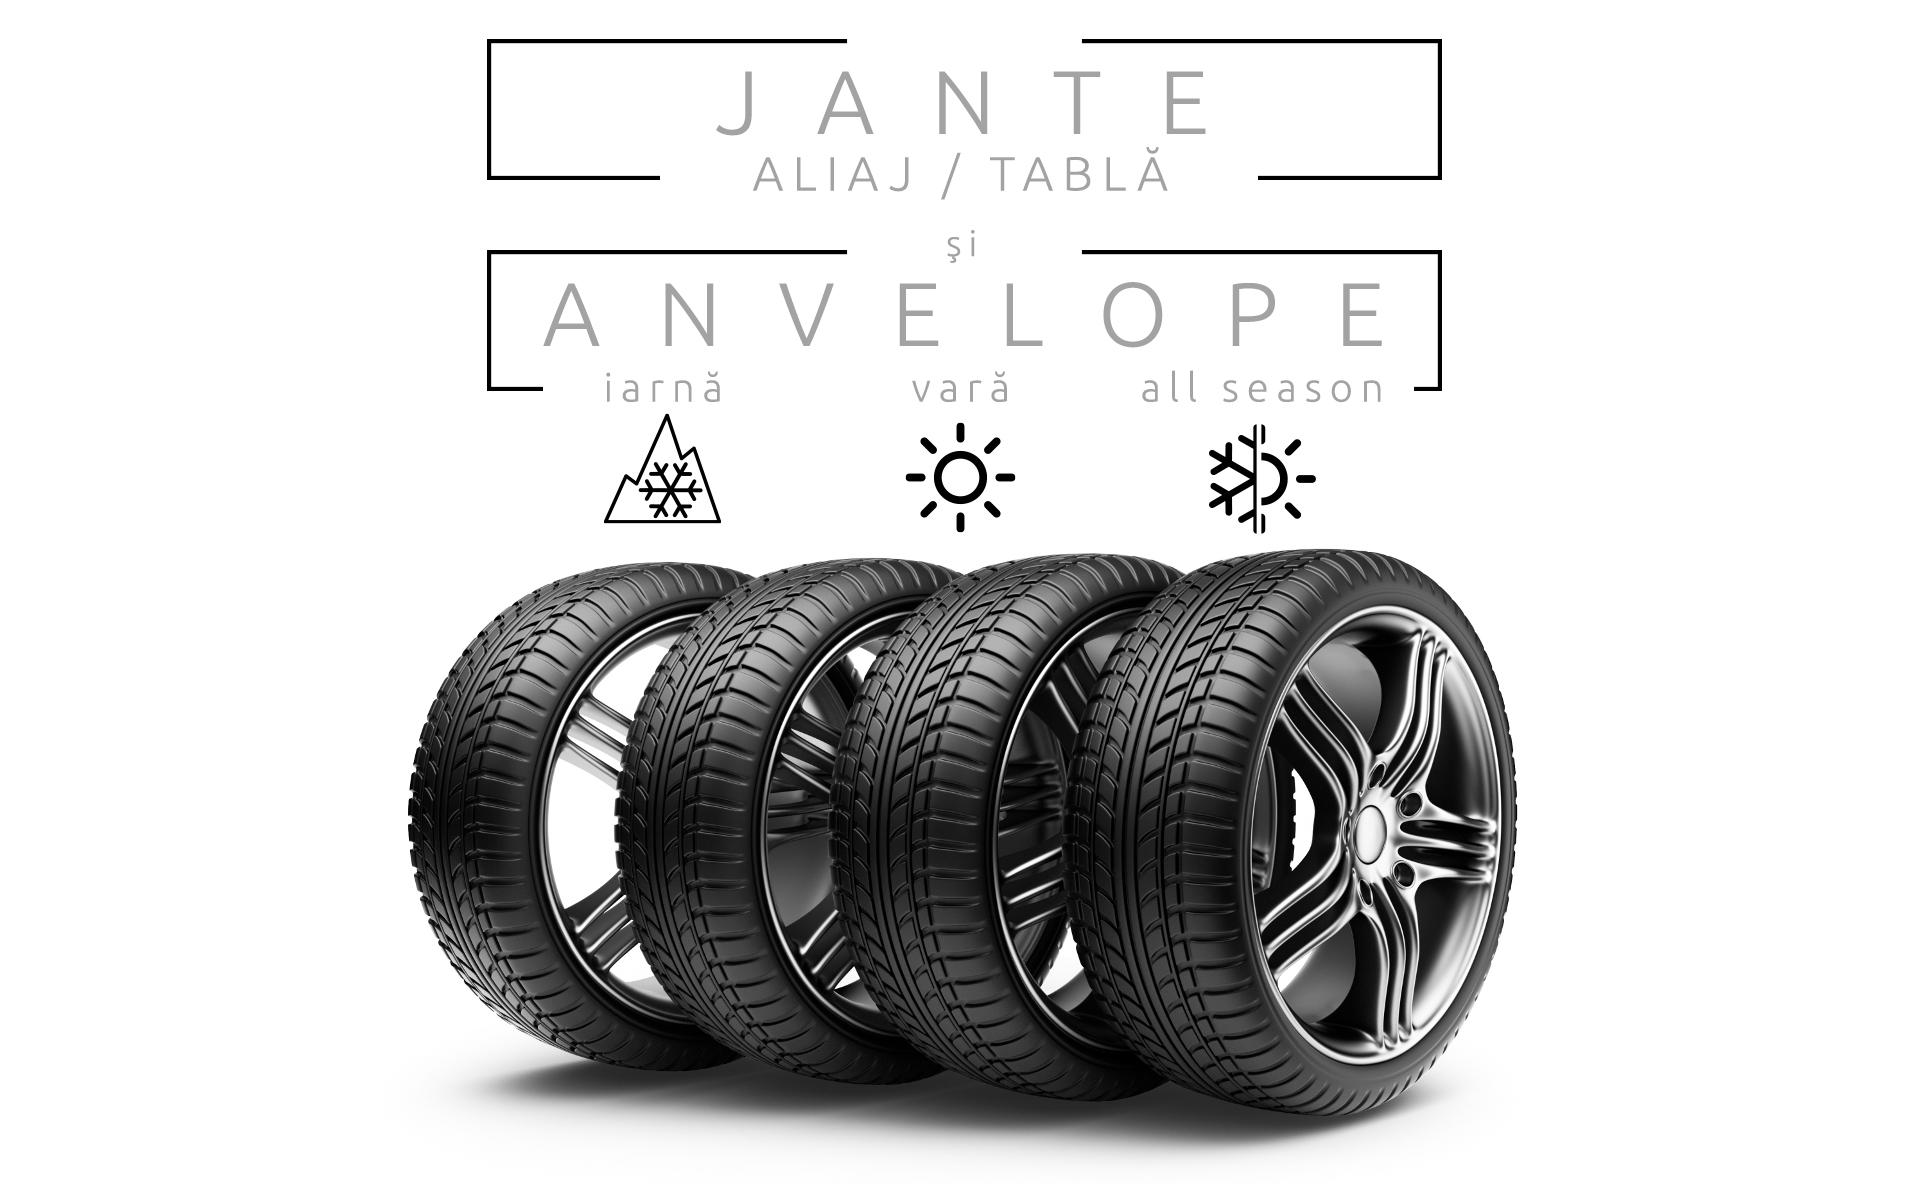 Anvelope si Jante